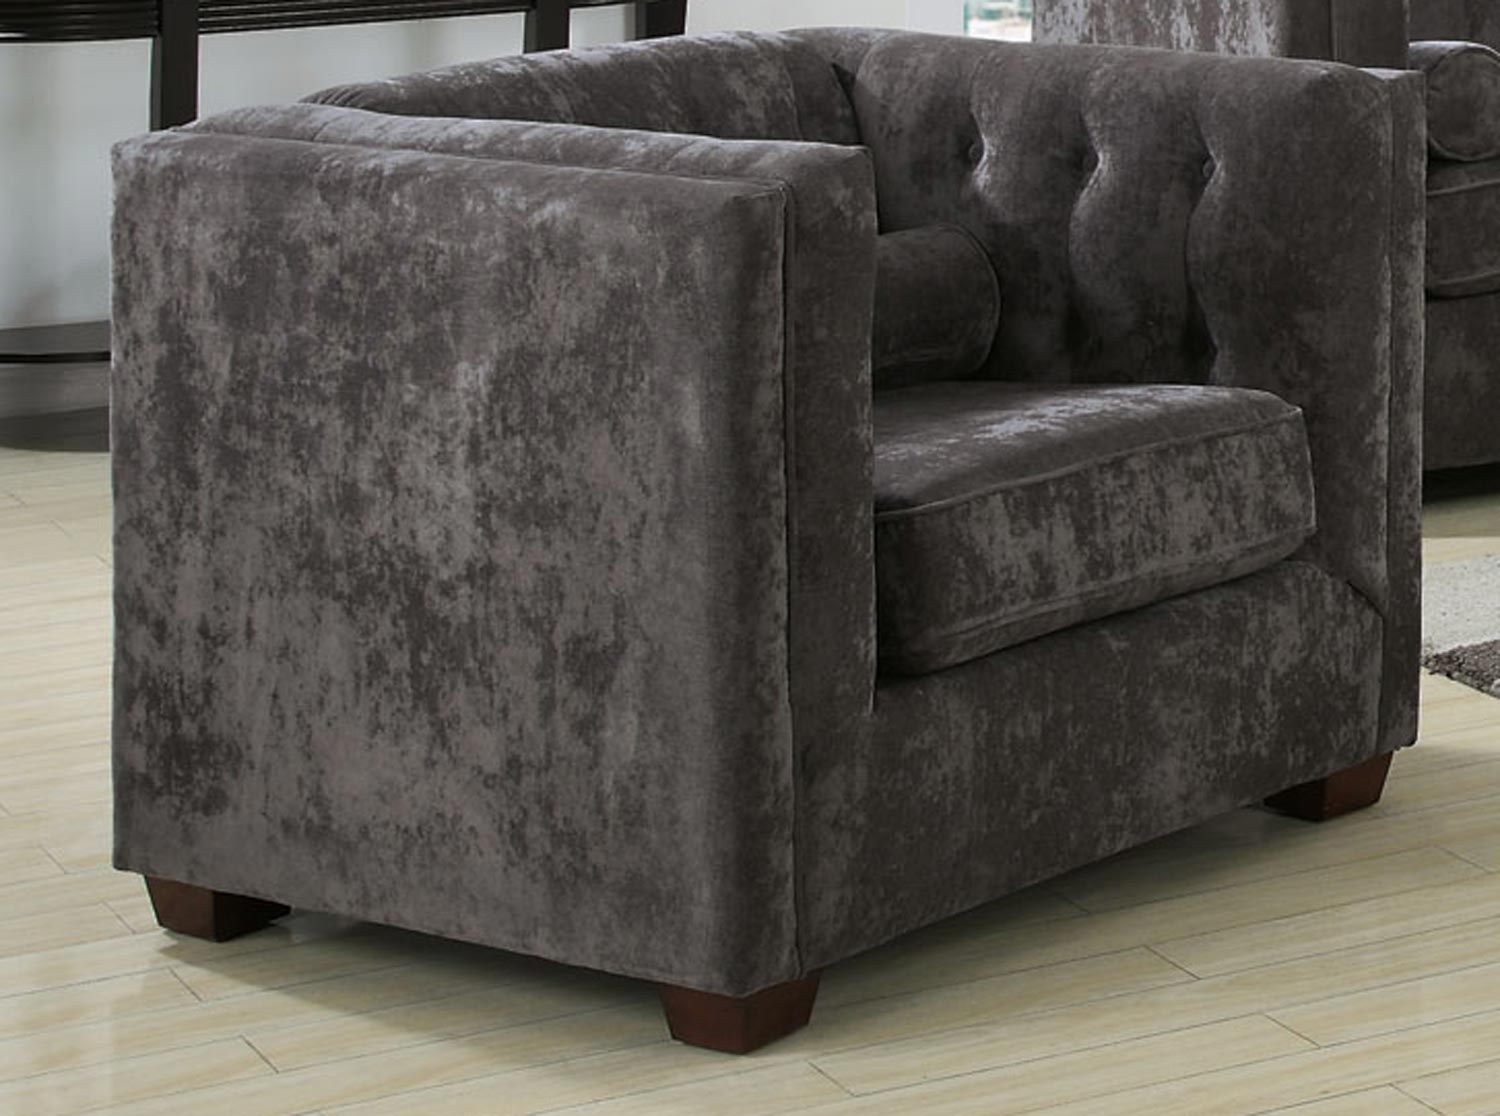 Coaster Alexis Chair - Charcoal